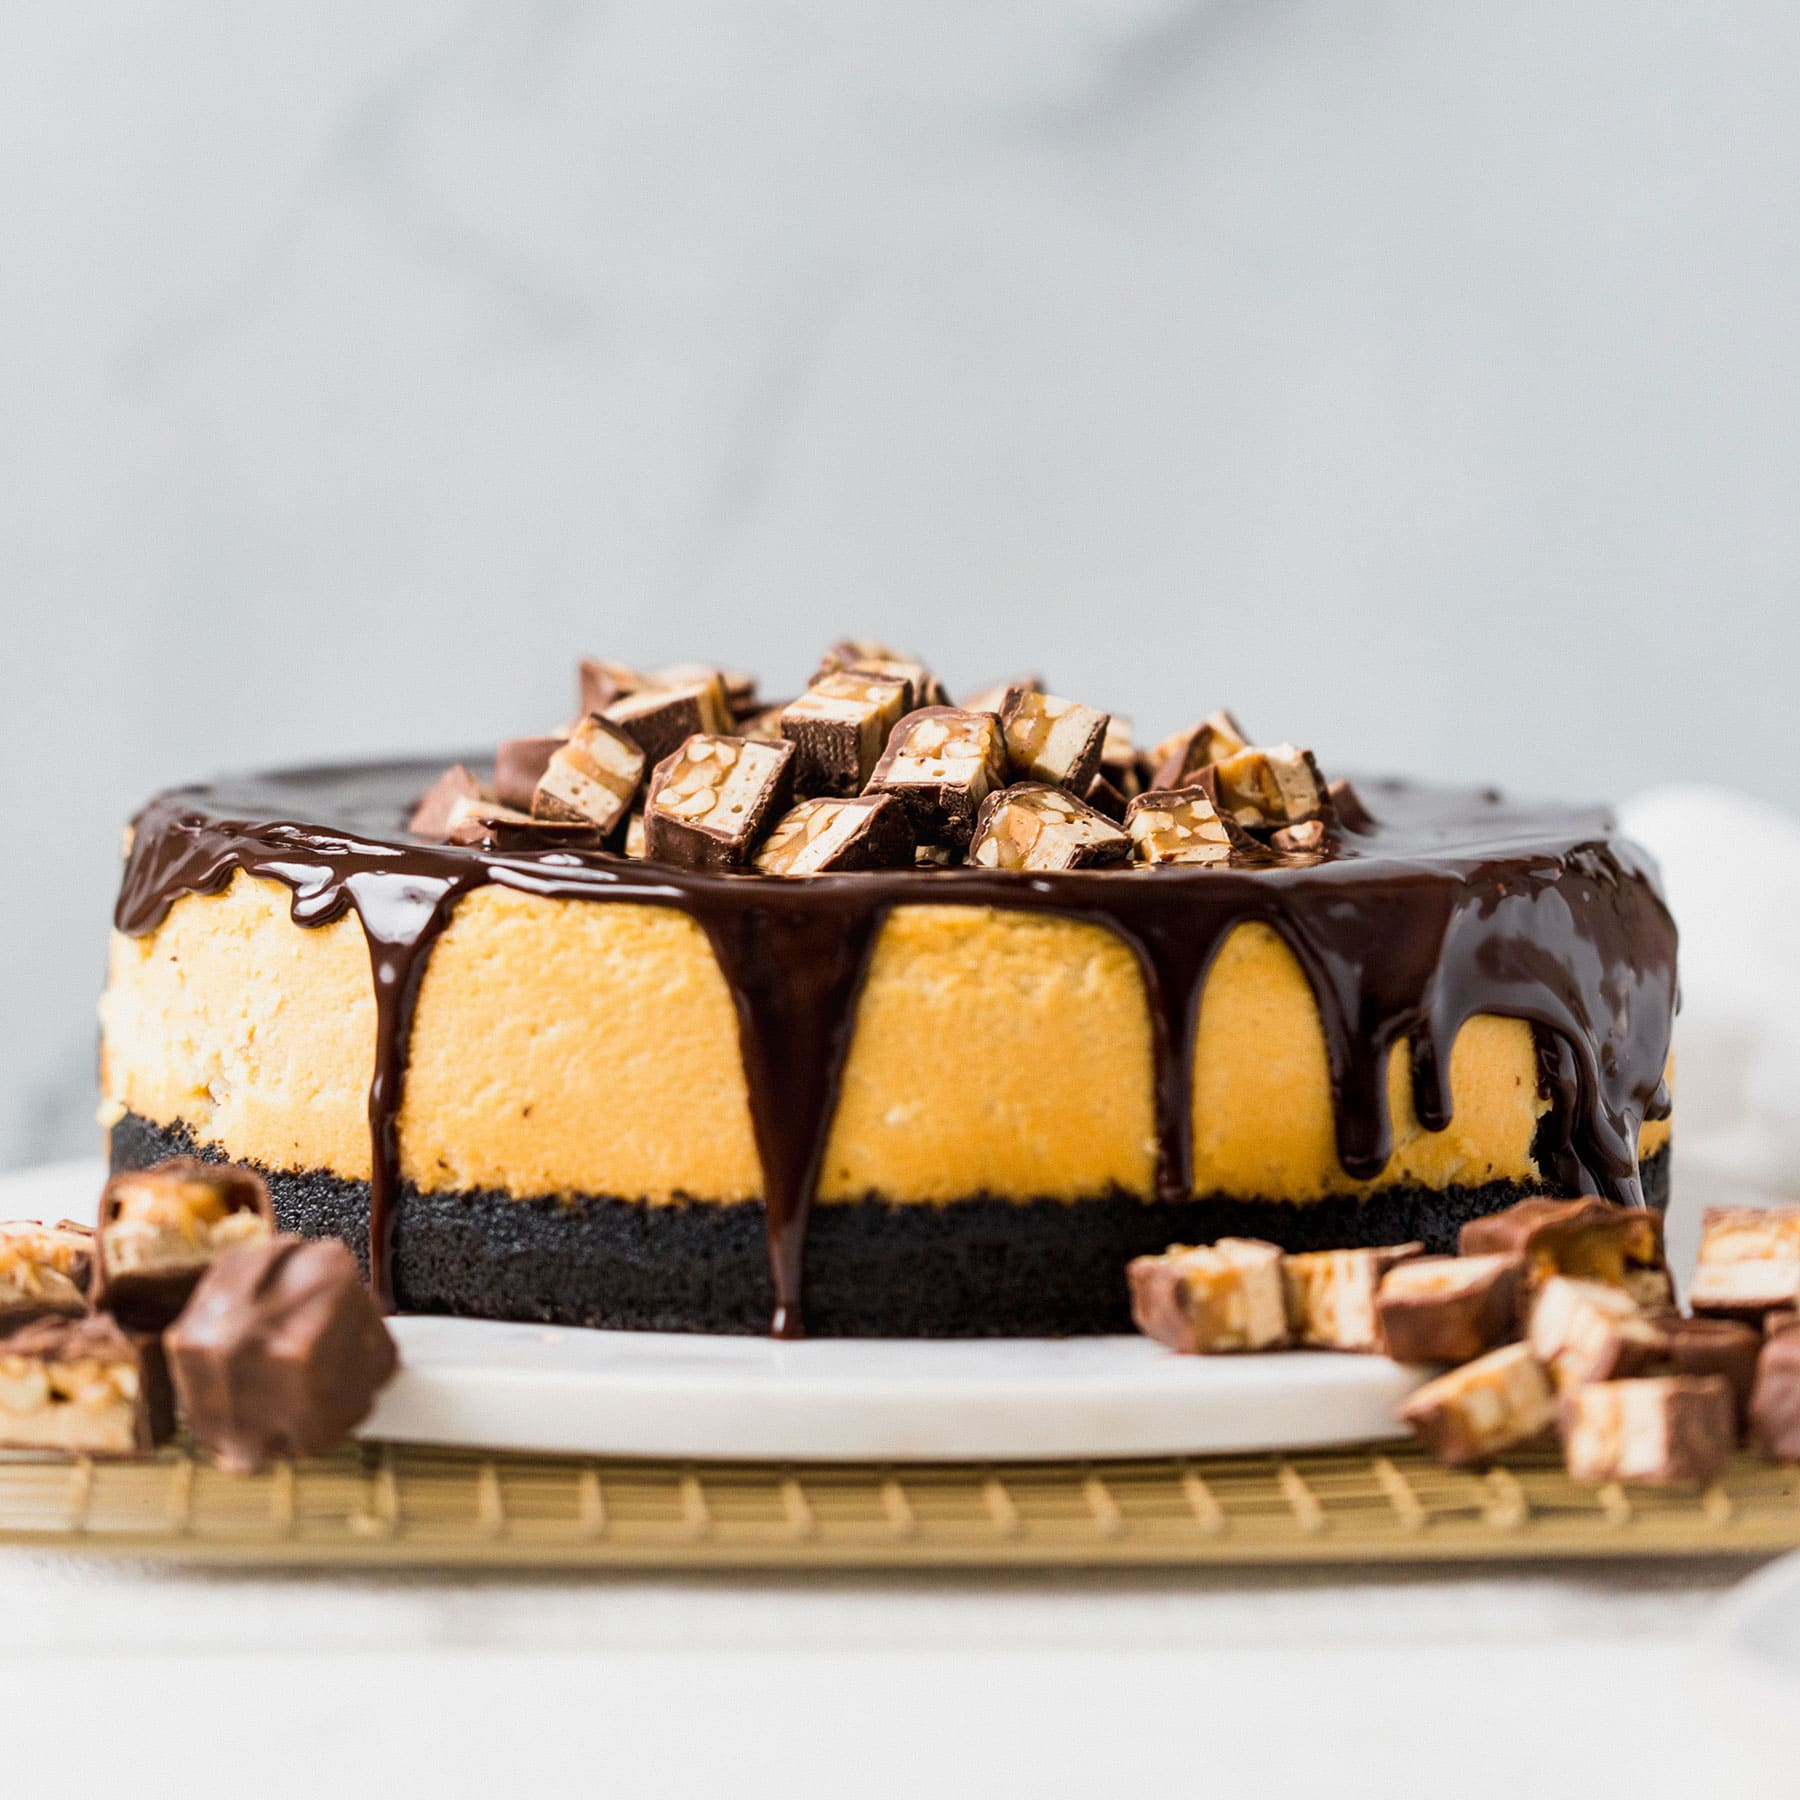 Decadent Snickers Cheesecake recipe with Oreo crust and chocolate ganache!